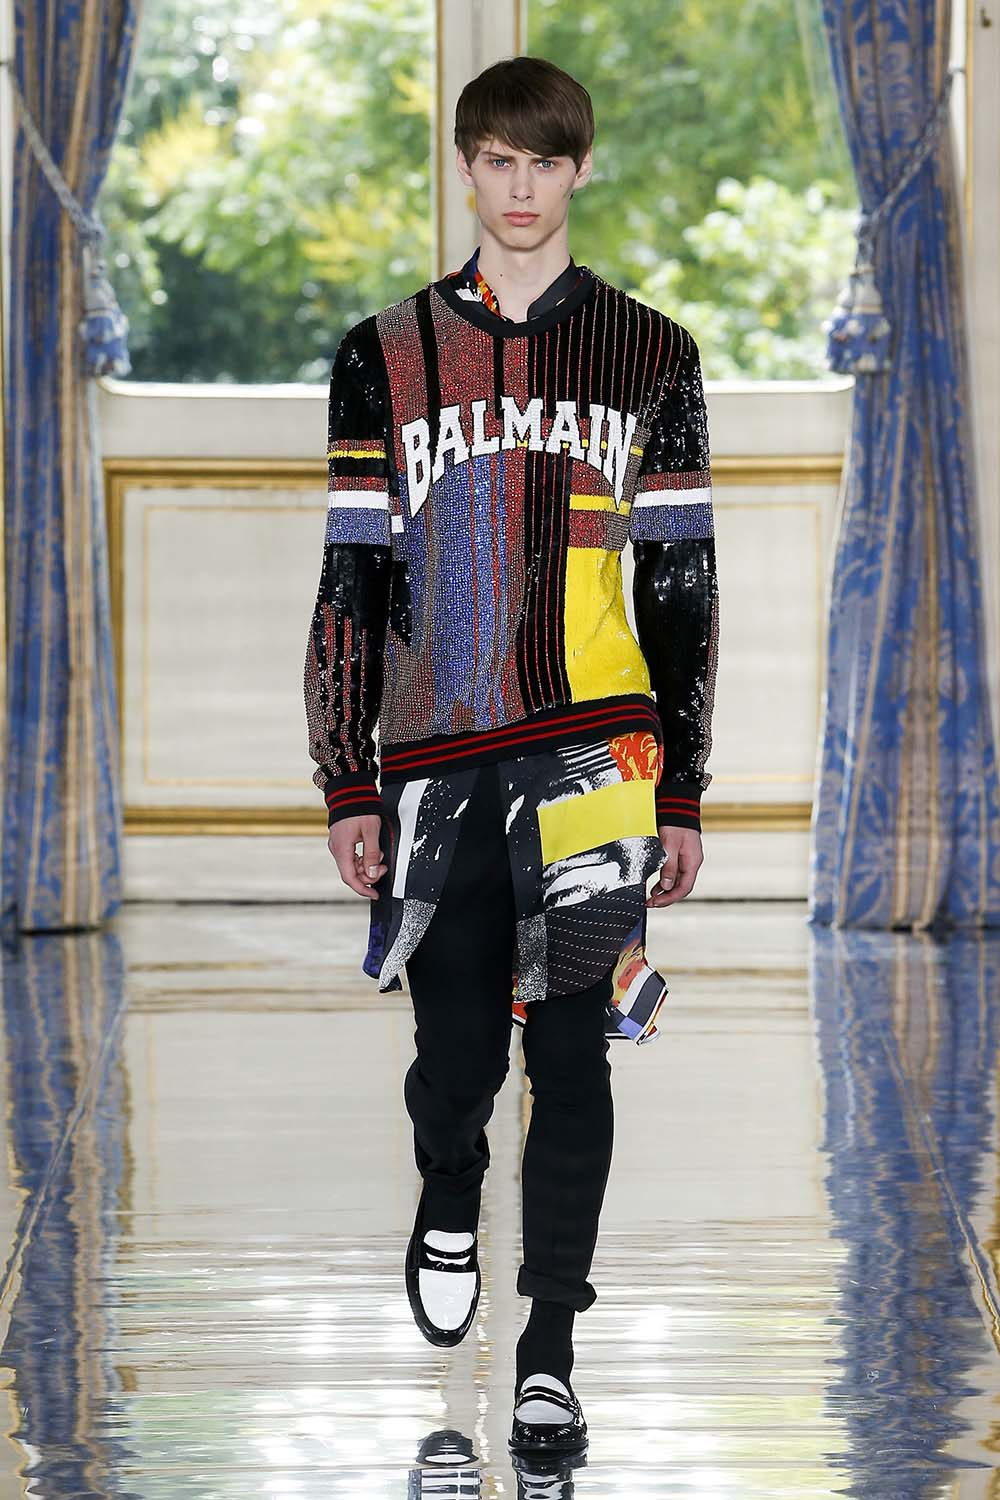 Balmain Paris Fashion Week Men's SS19 - Sagaboi - Look 49